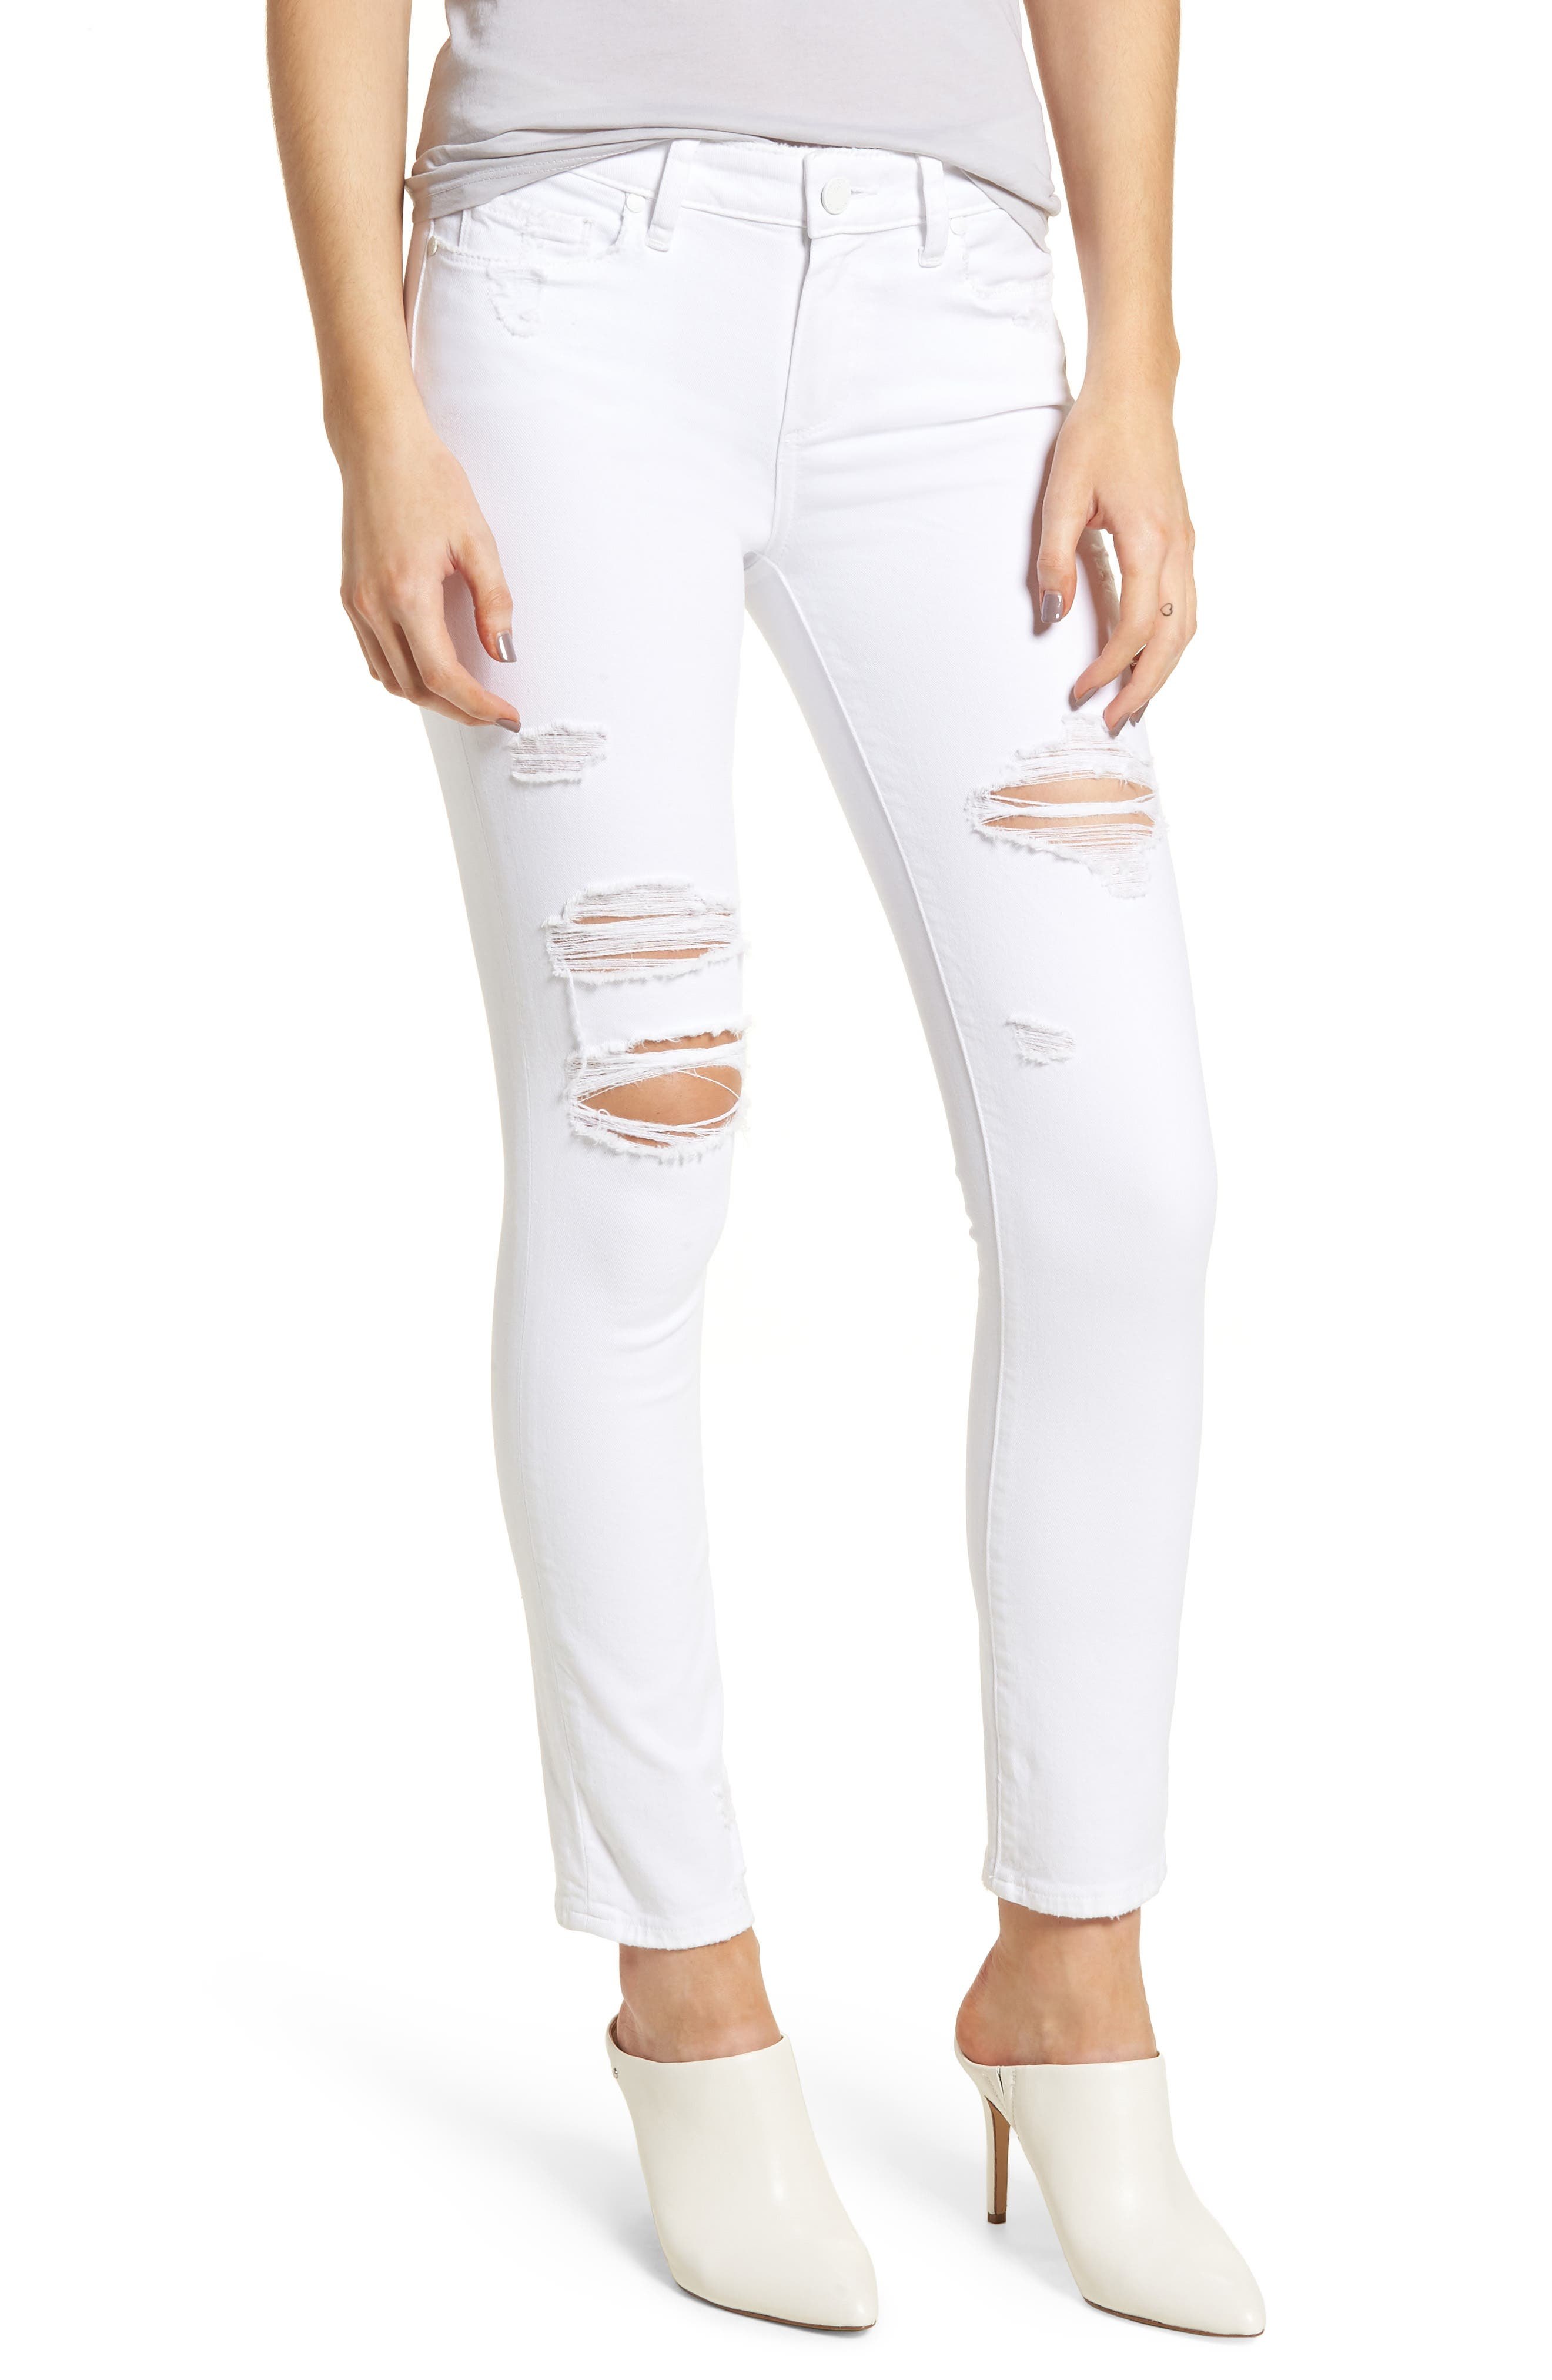 Skyline Ripped Ankle Skinny Jeans,                         Main,                         color, 100